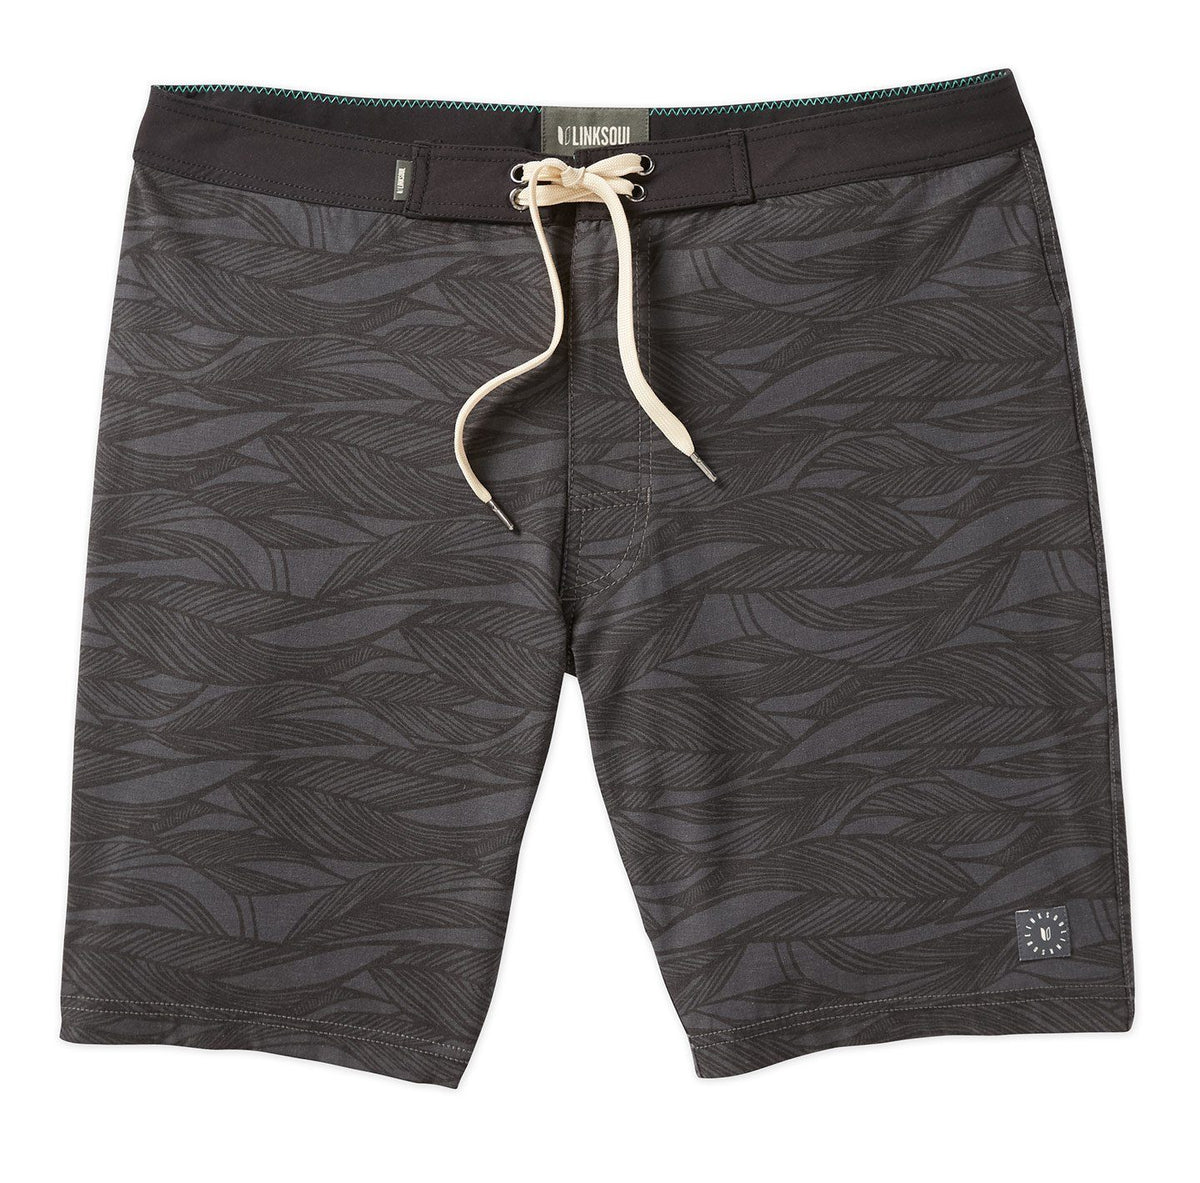 Leaf Print Boardwalker Boardshort